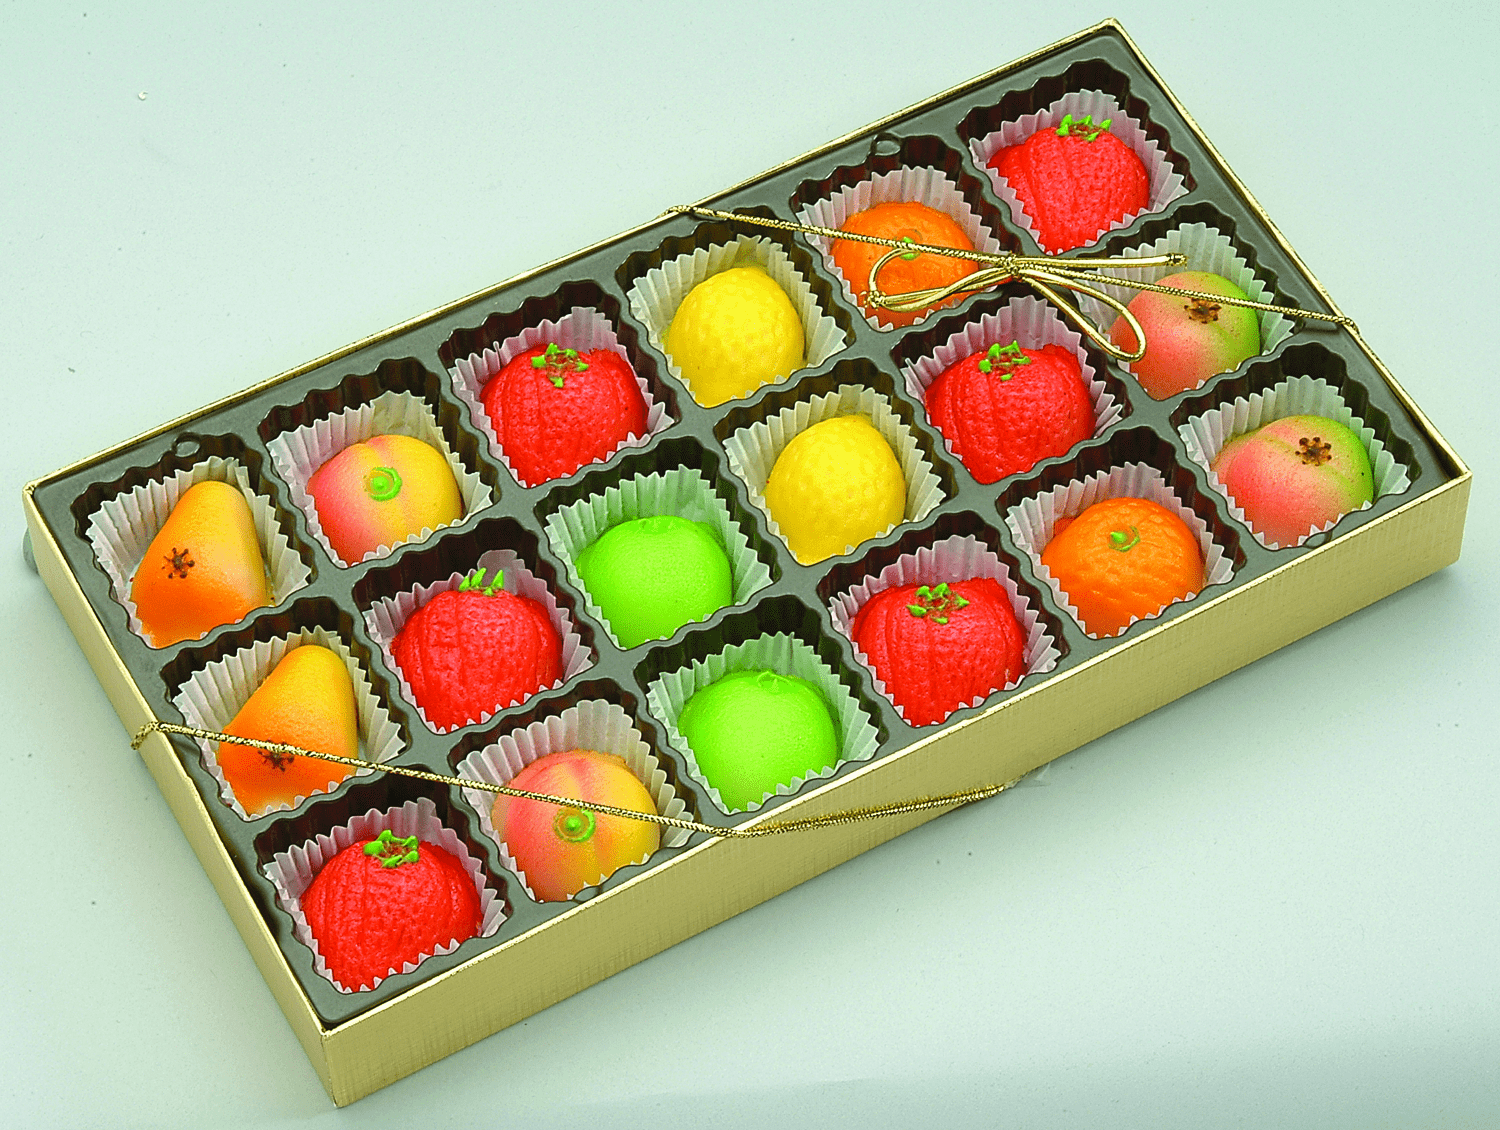 M-1 ASSORTED FRUIT 18 PIECES 8 OZ